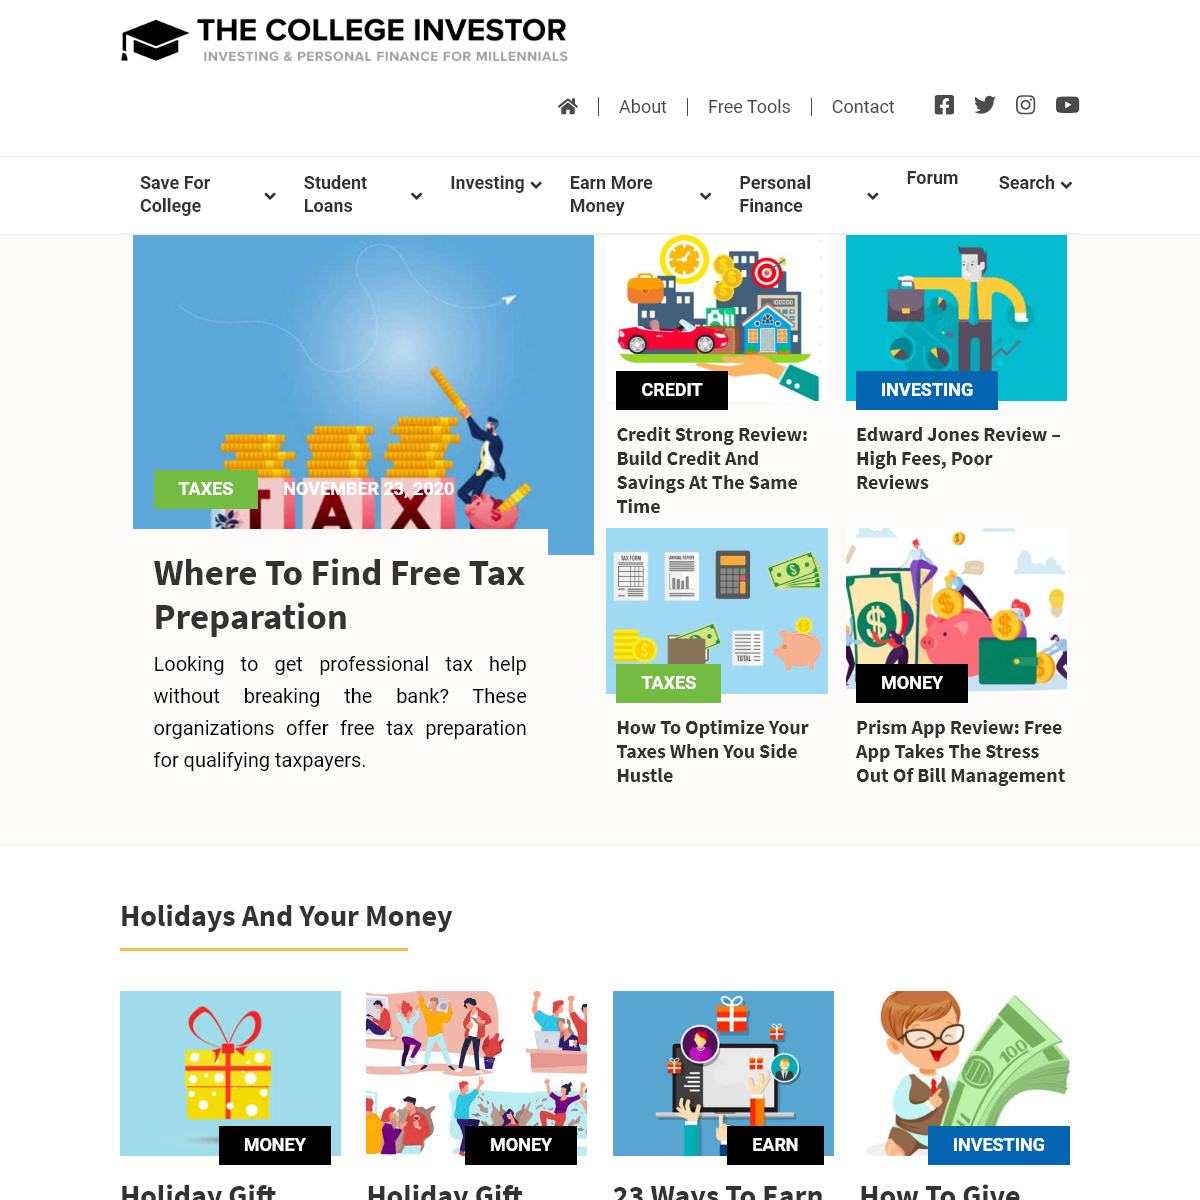 The College Investor - Millennial Personal Finance and Investing